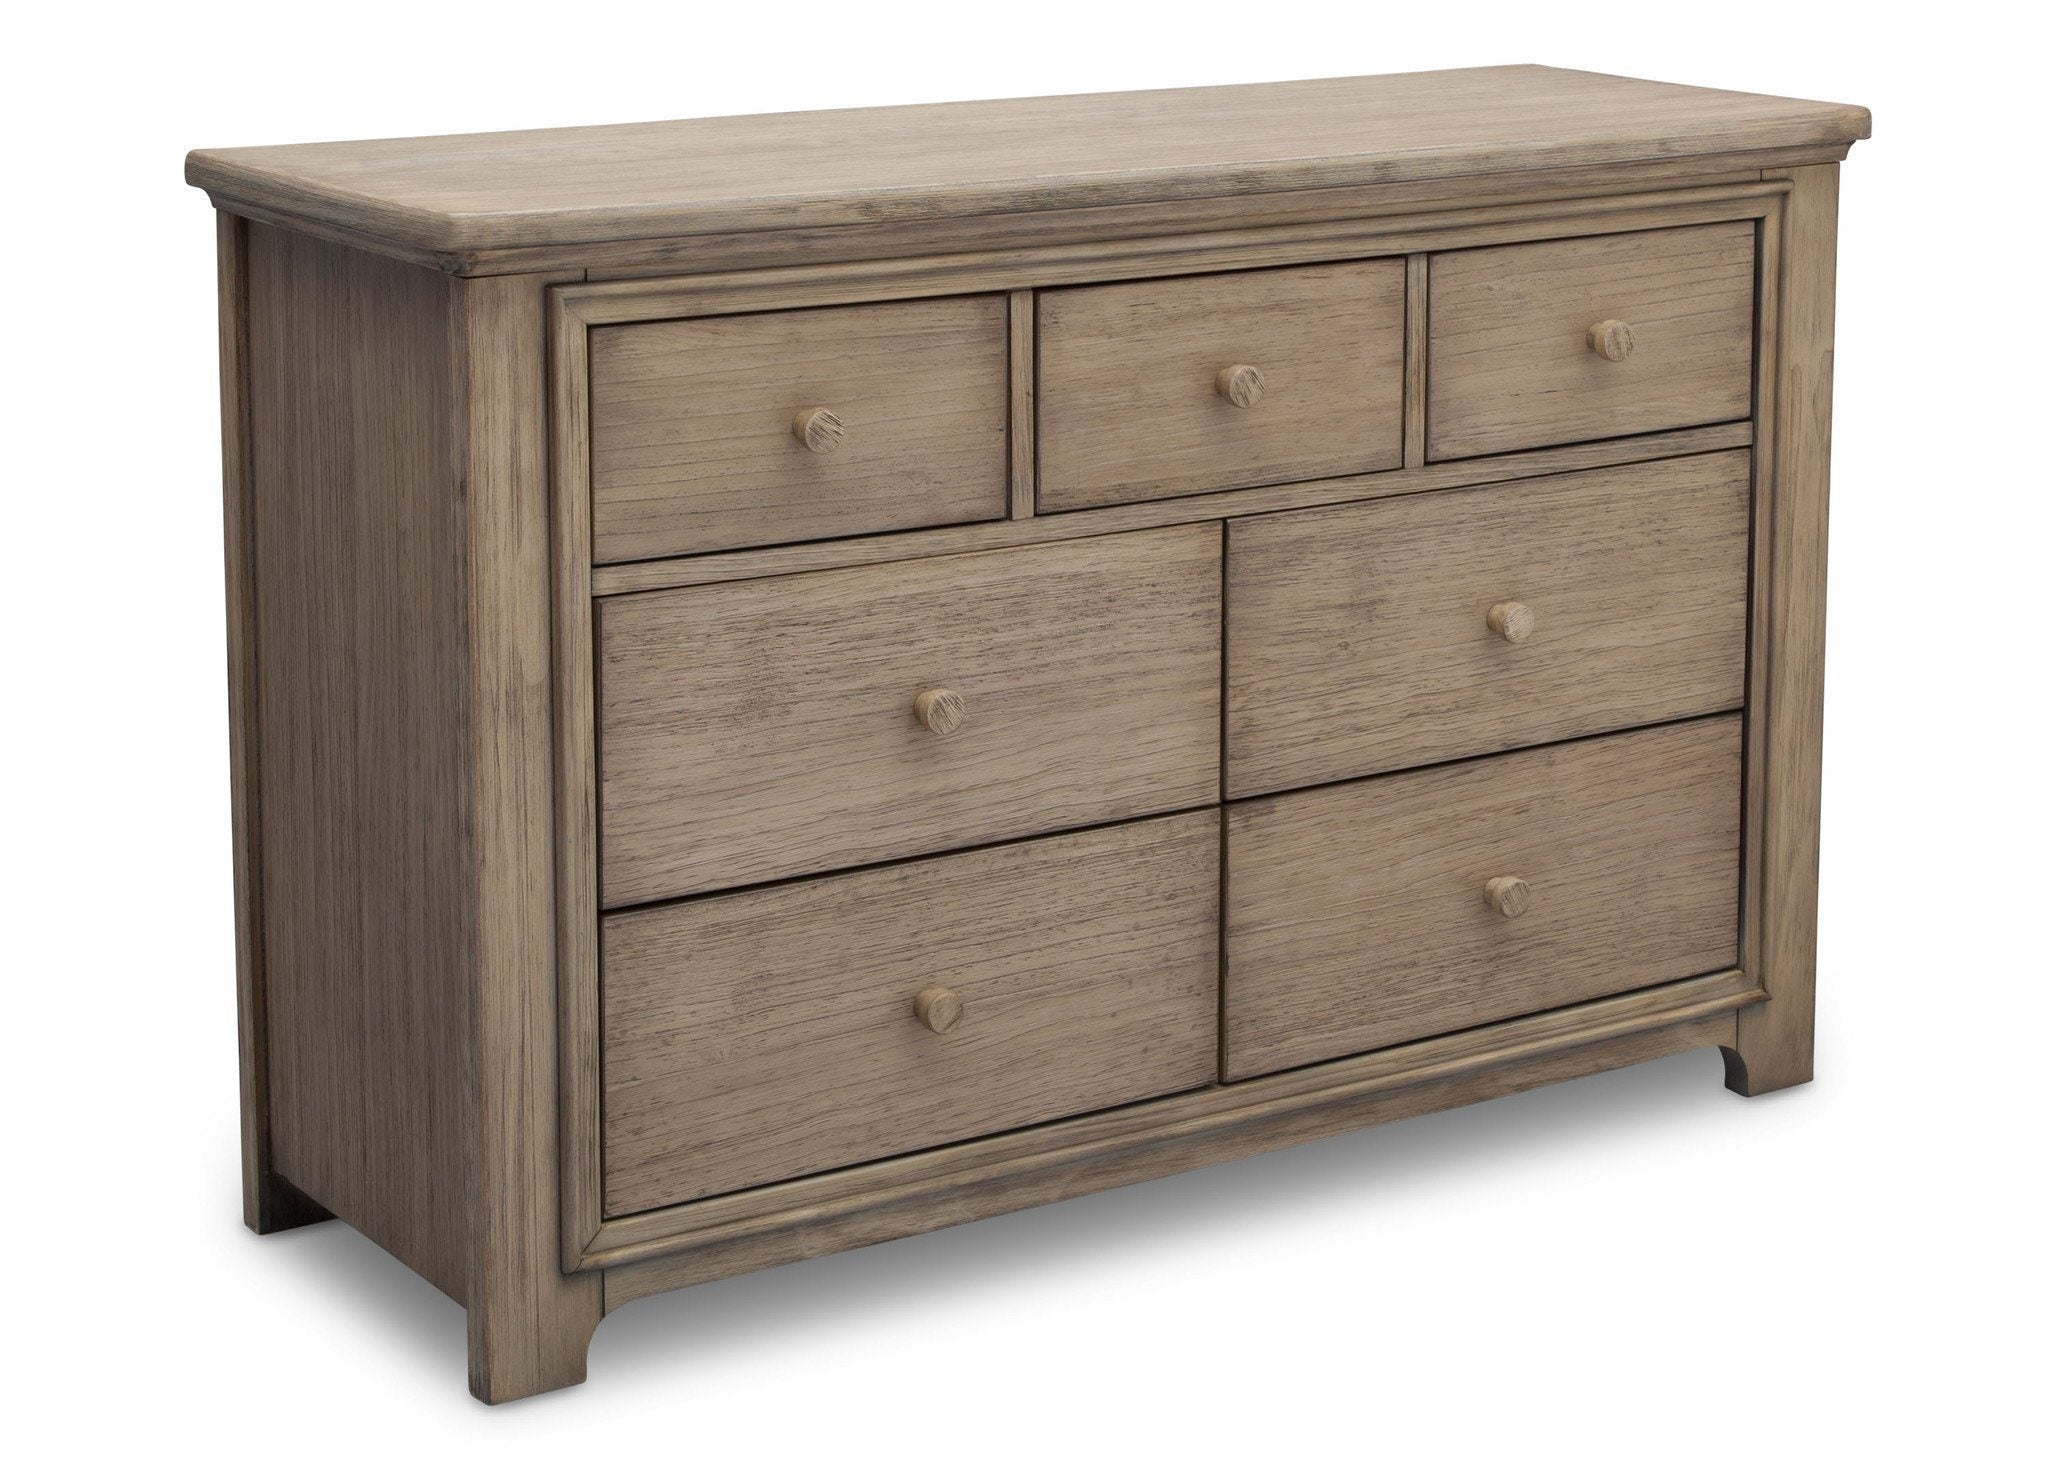 Serta Rustic Driftwood (112) Langley 7 Drawer Dresser, Right View b2b